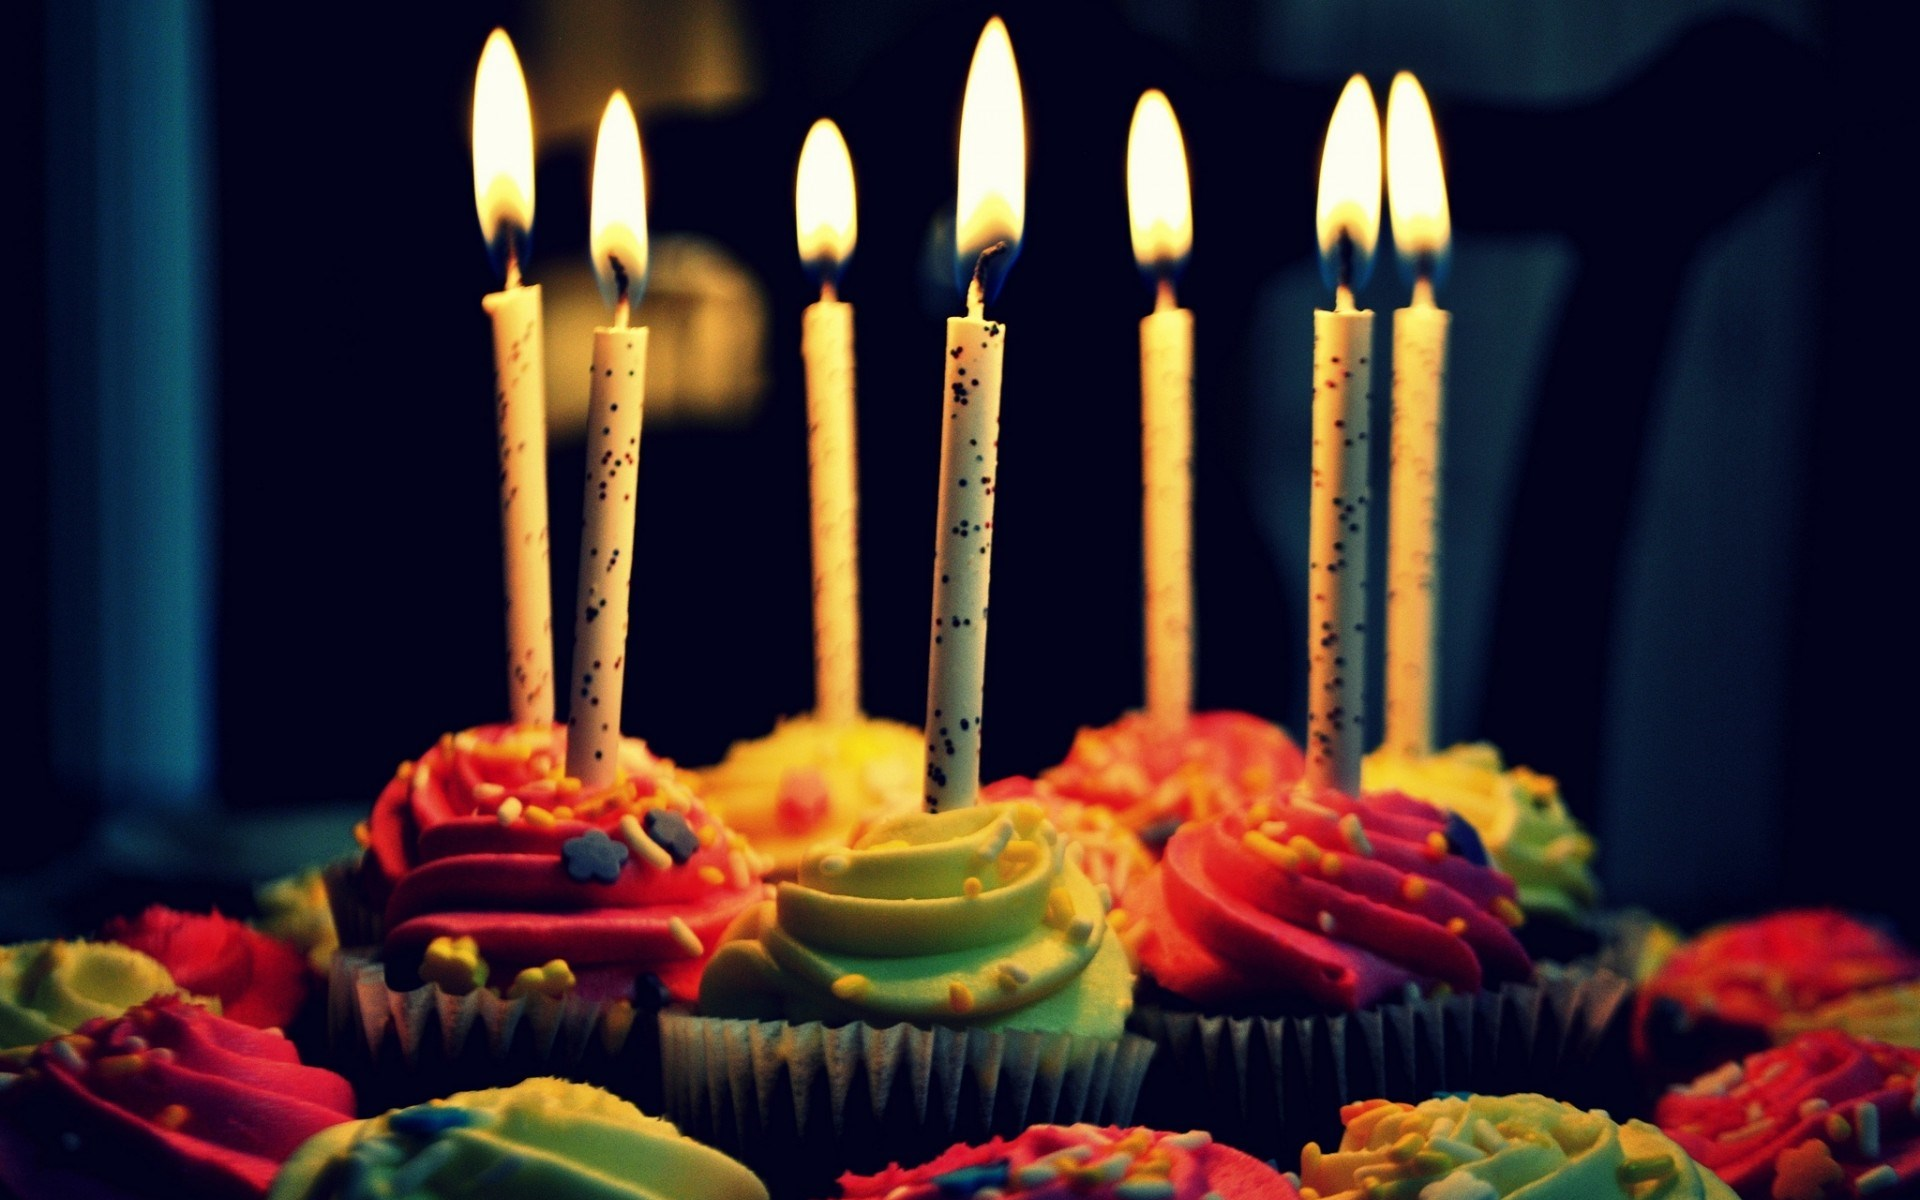 Fire Candles Cake Birthday